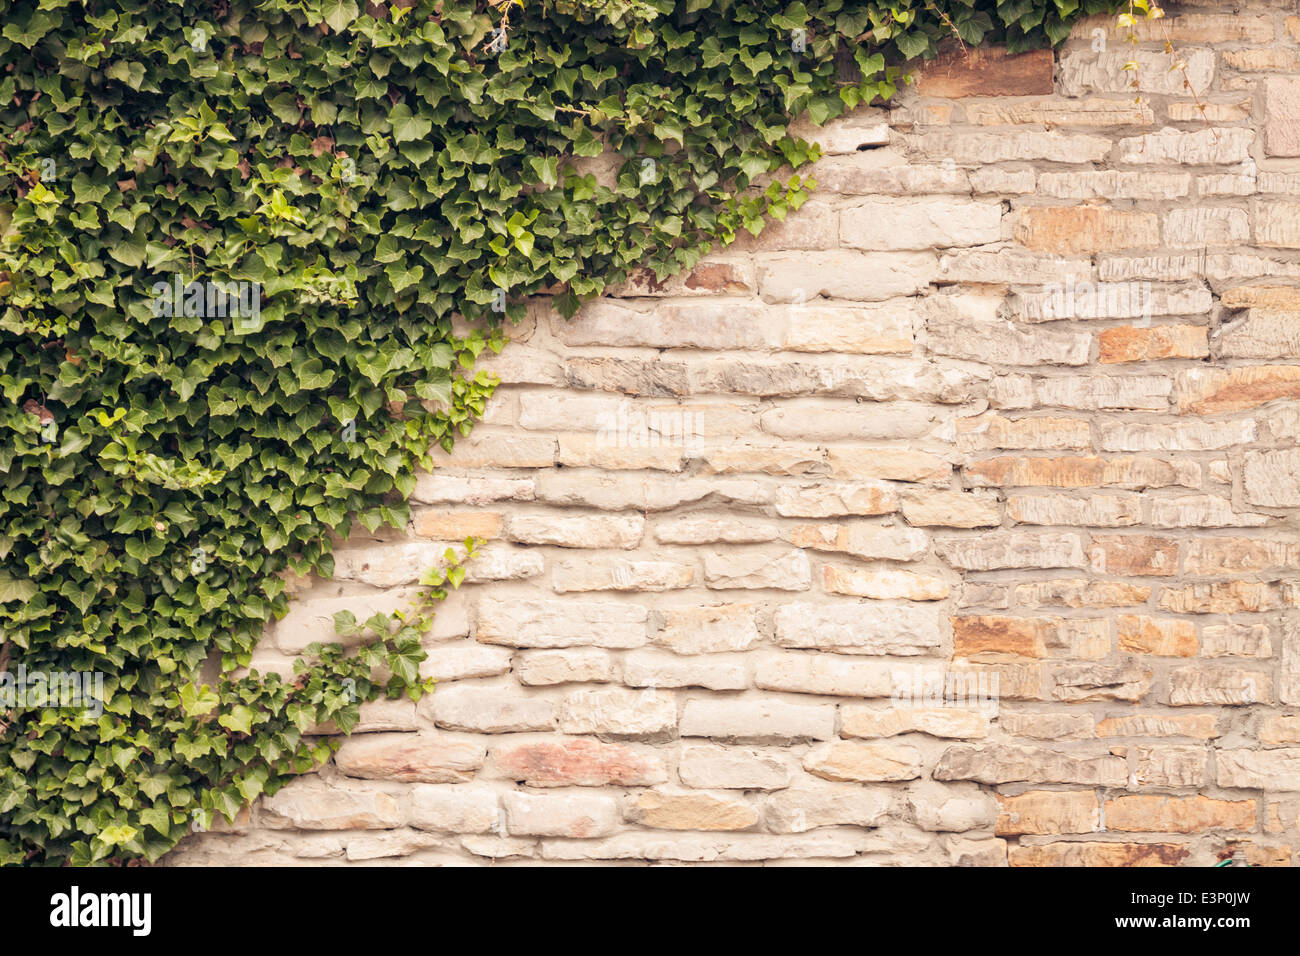 Climbing vines for walls - Ivy Vines Climbing Up Old Rustic Stone Wall Stock Image